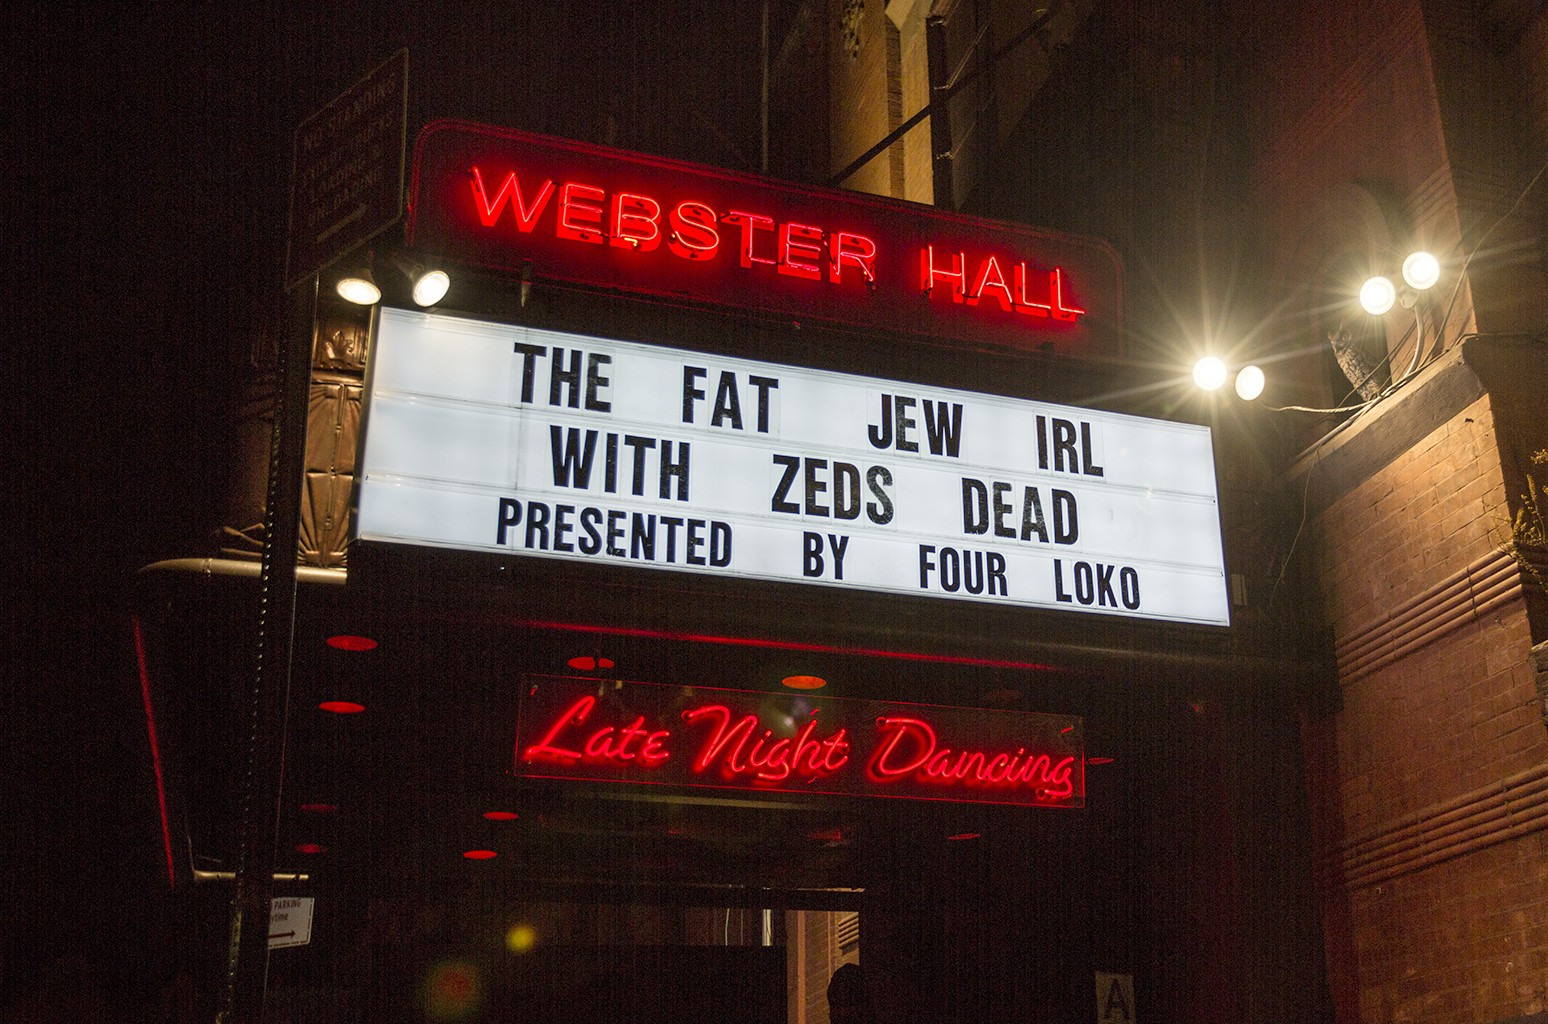 Webster Hall in New York City